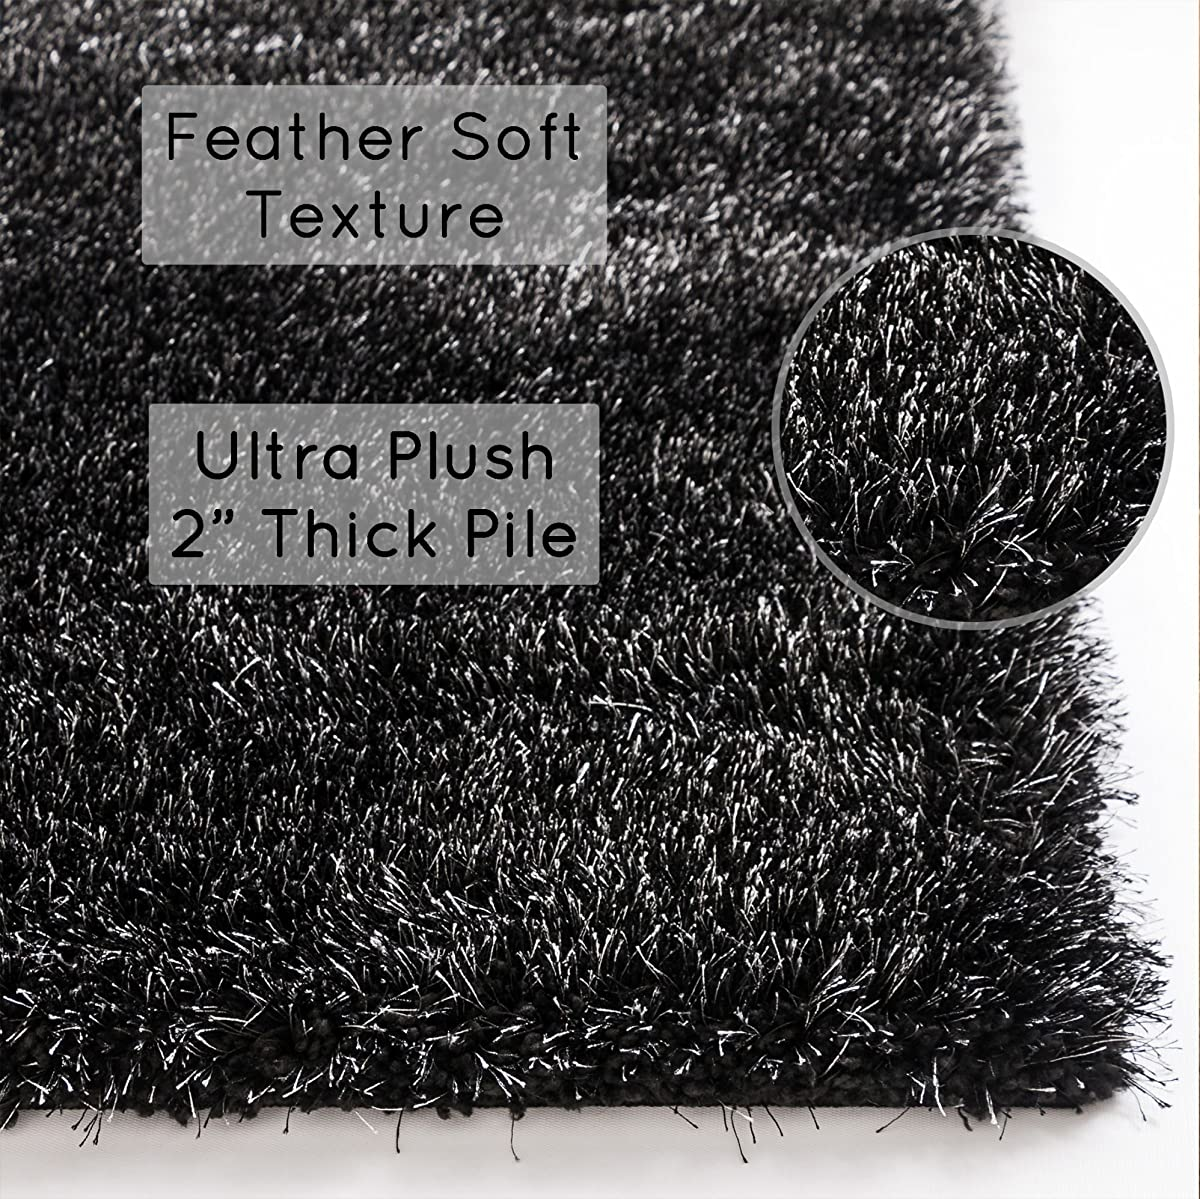 """Shimmer Shag Black Solid Plain Modern Luster Ultra Thick Soft Plush 3x5 ( 33"""" X 5 ) Area Rug Contemporary Retro Polyester Textured Two Length 2"""" Pile Yarn Easy Clean Stain Fade Resistant"""